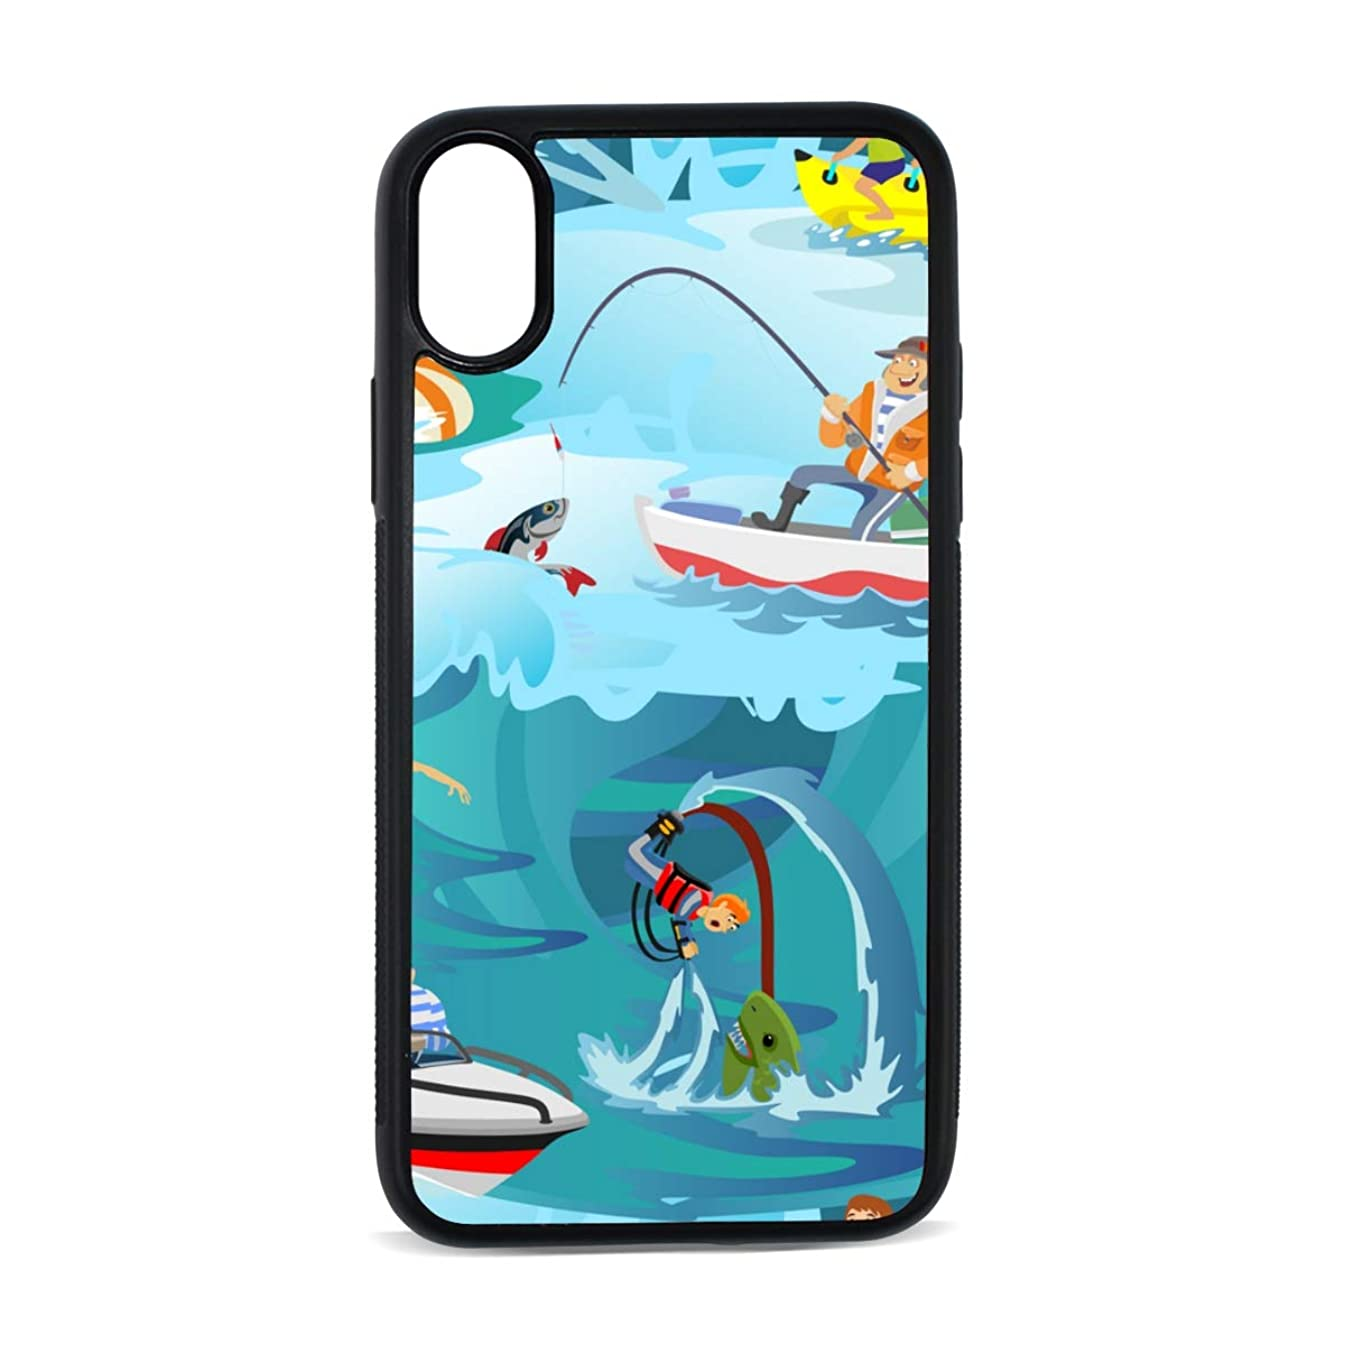 Windsurfing Extreme Sports Cool Digital Print TPU Pc Pearl Plate Cover Phone Hard Case Cell Phone Accessories Compatible with Protective Apple Iphonex/xs Case 5.8 Inch